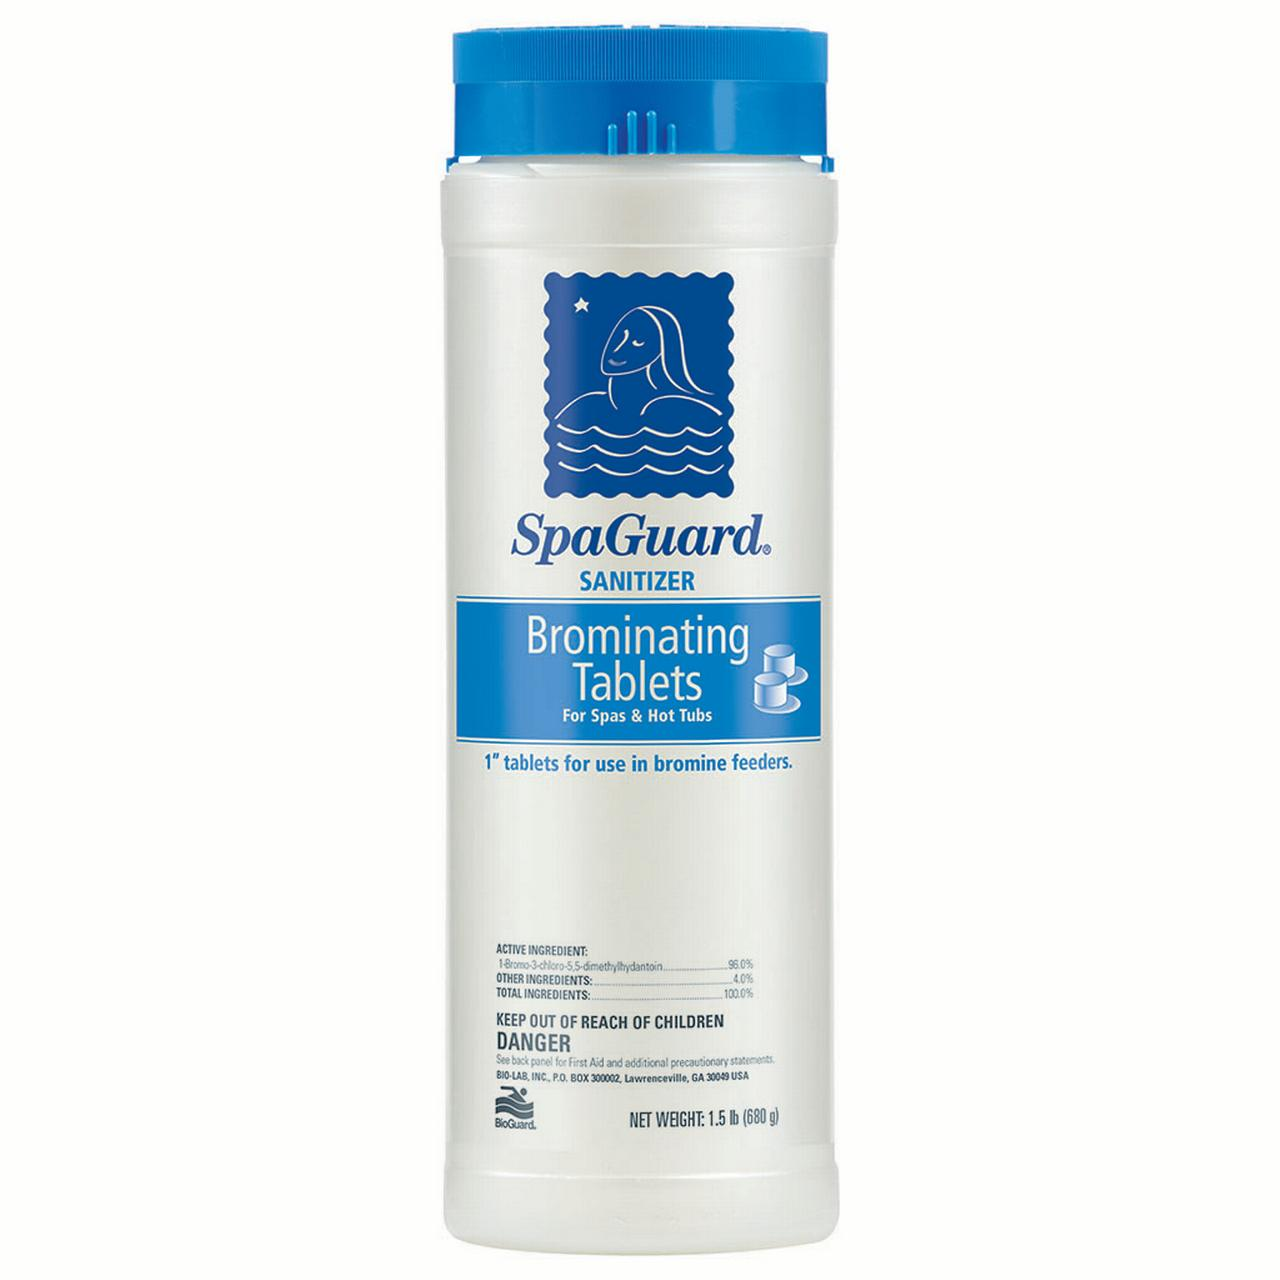 SpaGuard Brominating Tablets 1.5 lbs by BioGuard